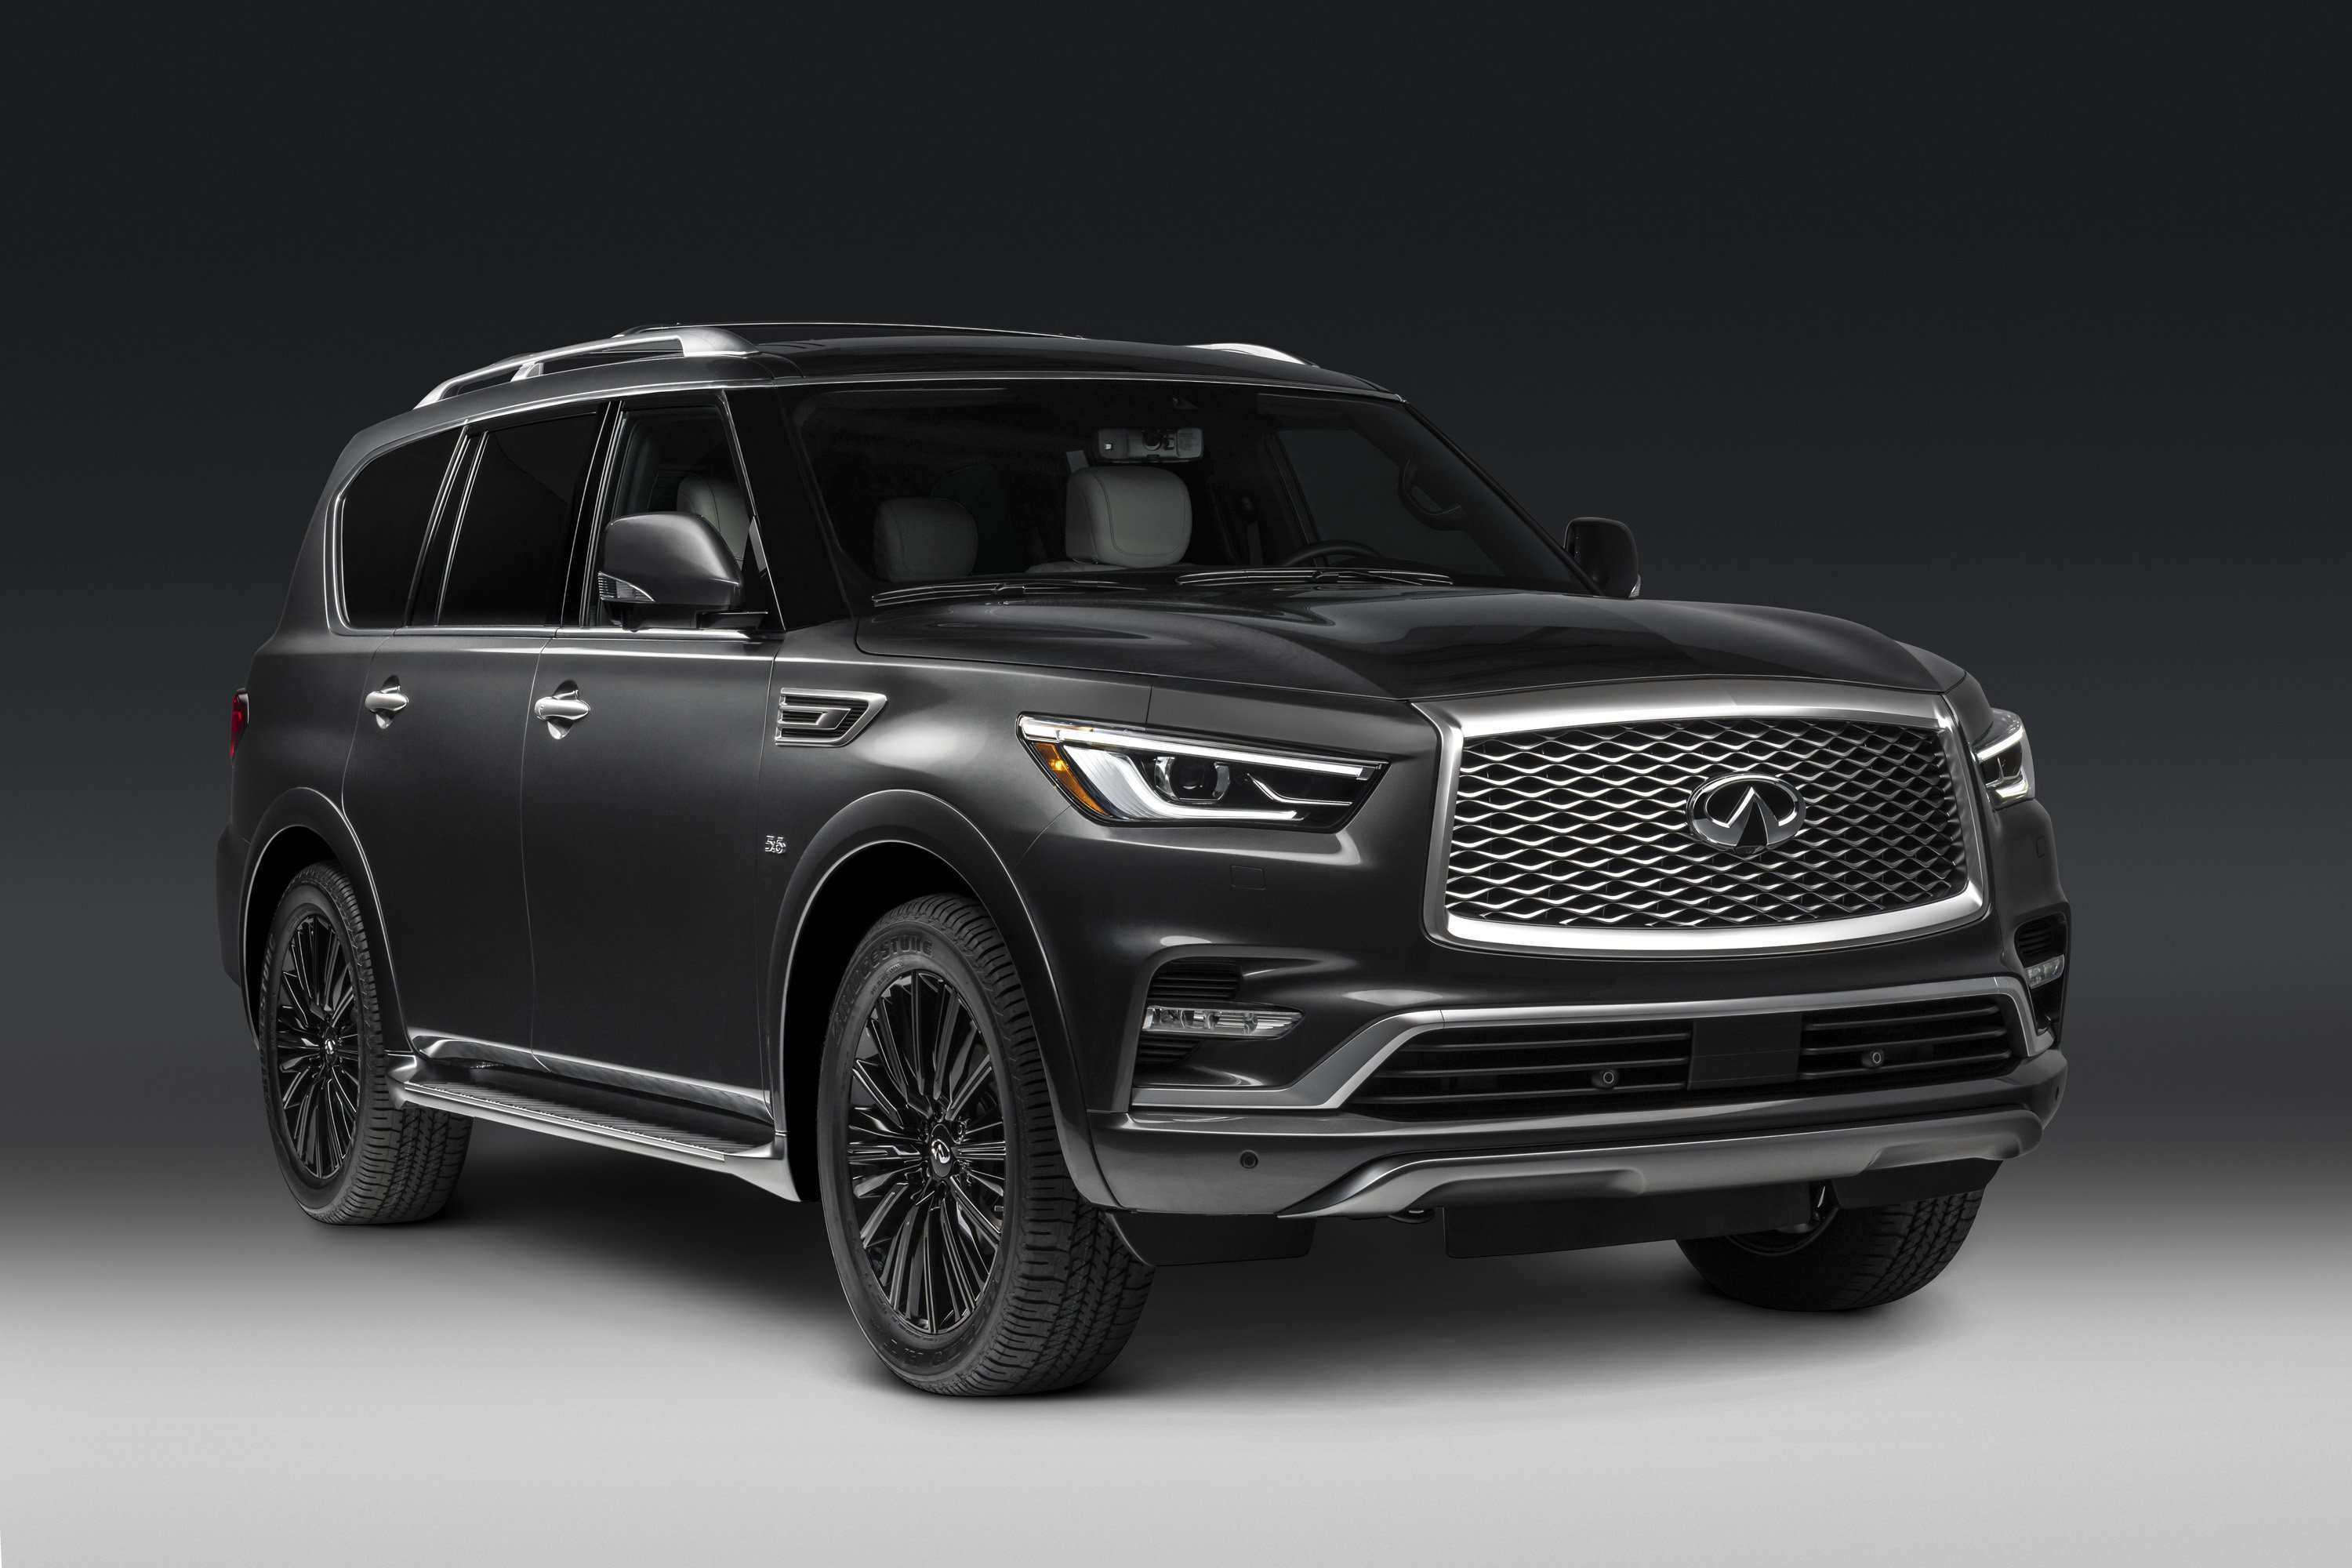 99 All New 2019 Infiniti Truck Redesign Pictures with 2019 Infiniti Truck Redesign